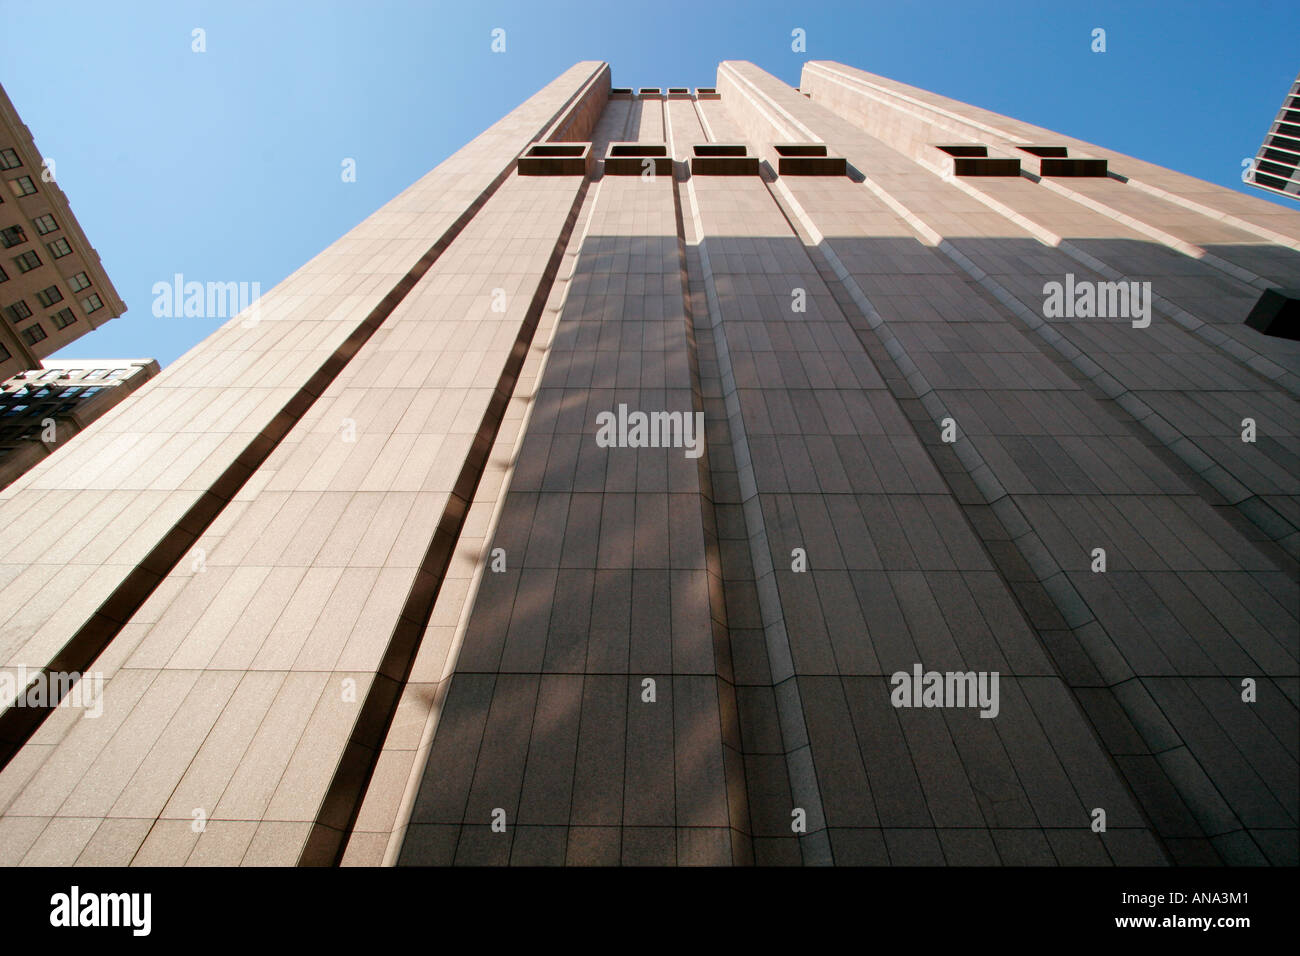 The AT&T building in Tribeca, New York. Stock Photo